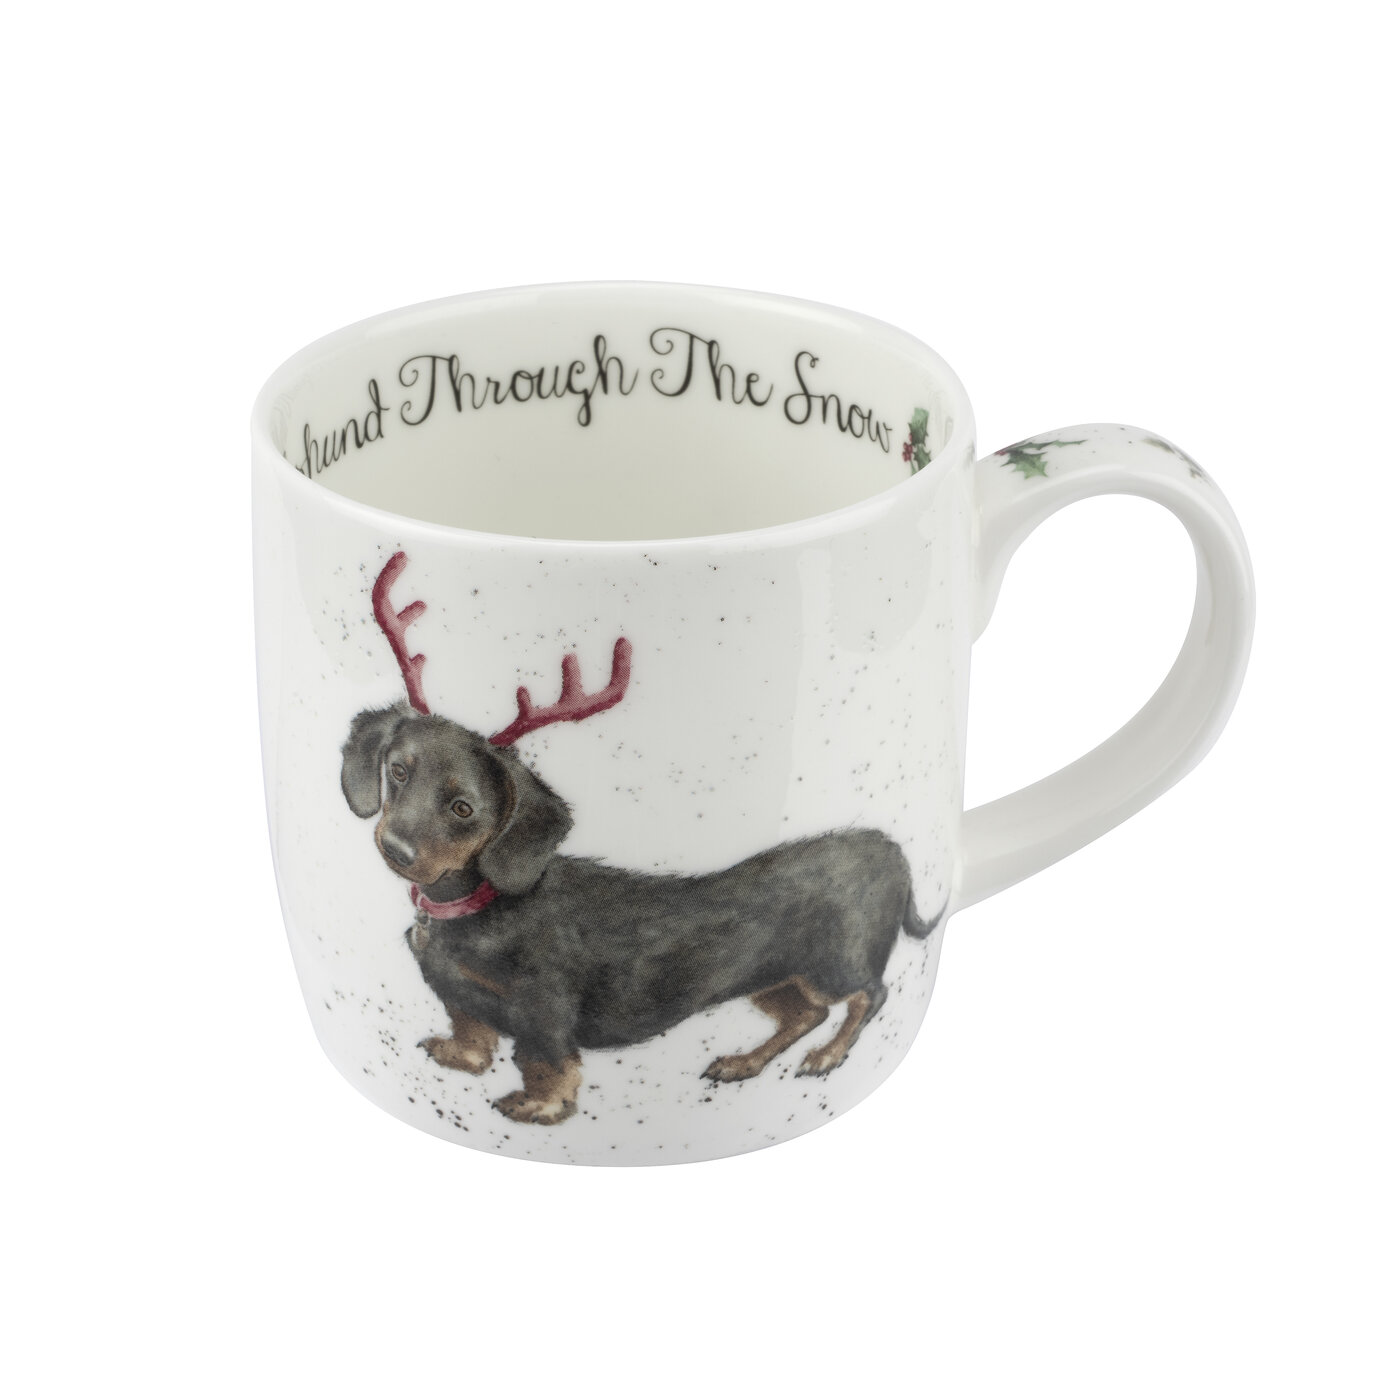 Royal Worcester Wrendale Designs 11 oz Mug & Coaster Set Dachshund Through The Snow image number 1